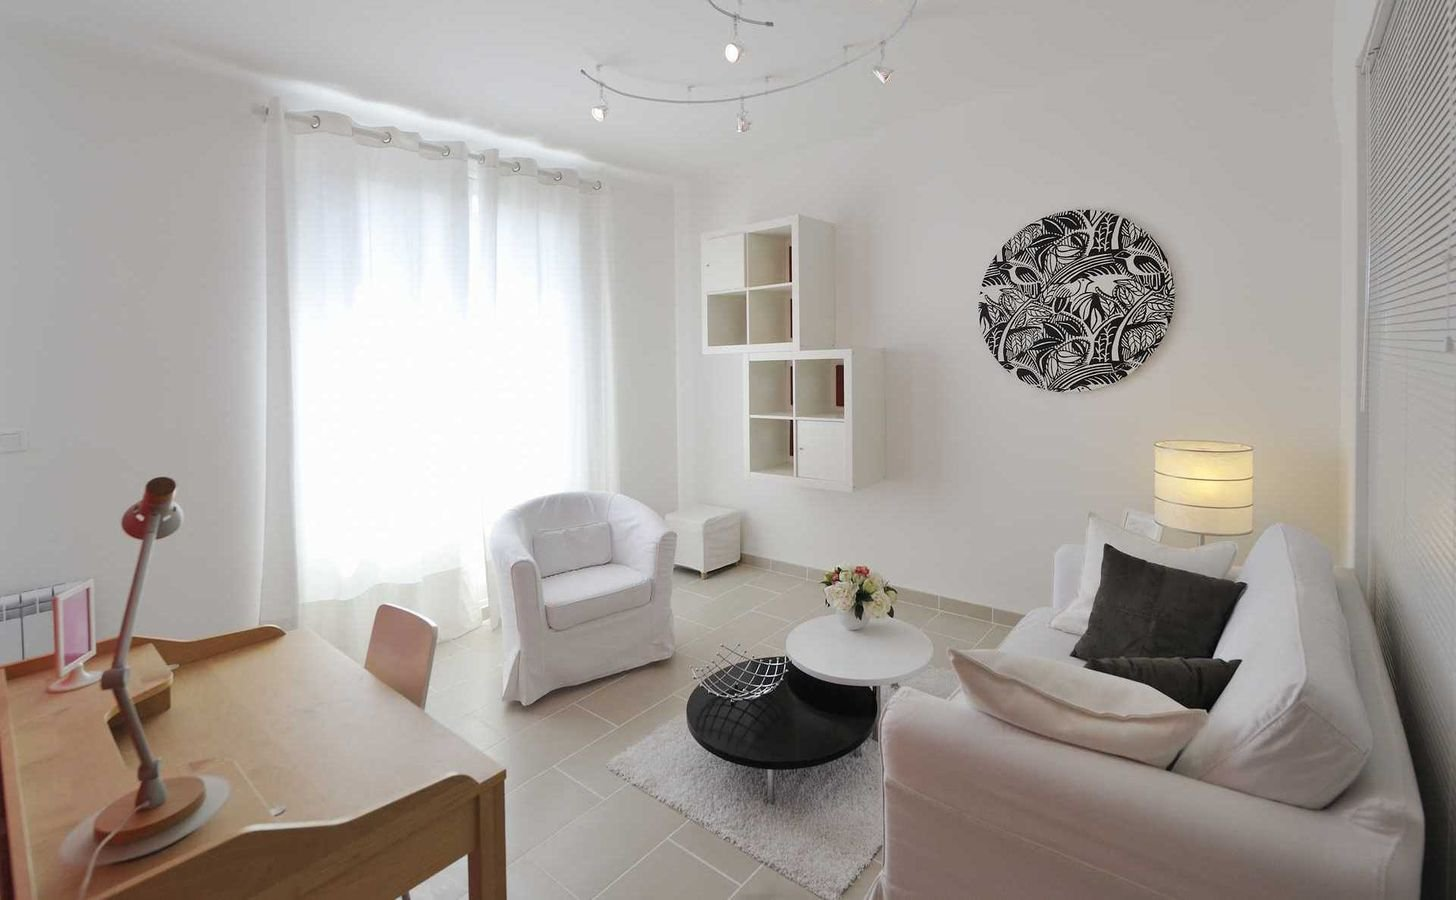 Furnished apartment for sale in Arles center near station